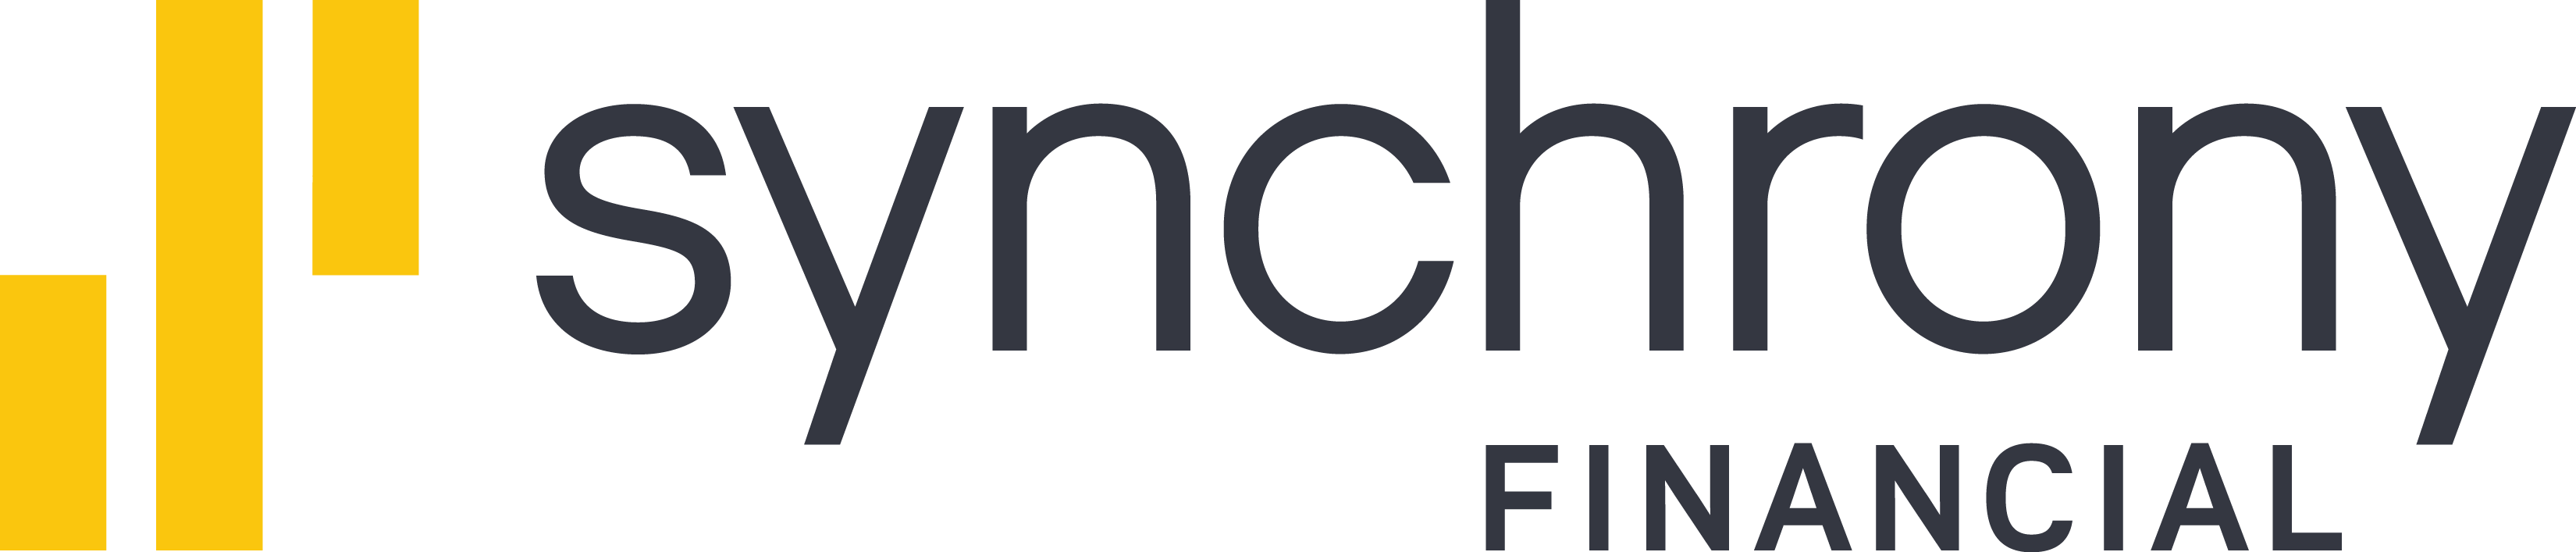 synchrony-financial-logo-goldcharcoal-transparent-cmyk.png